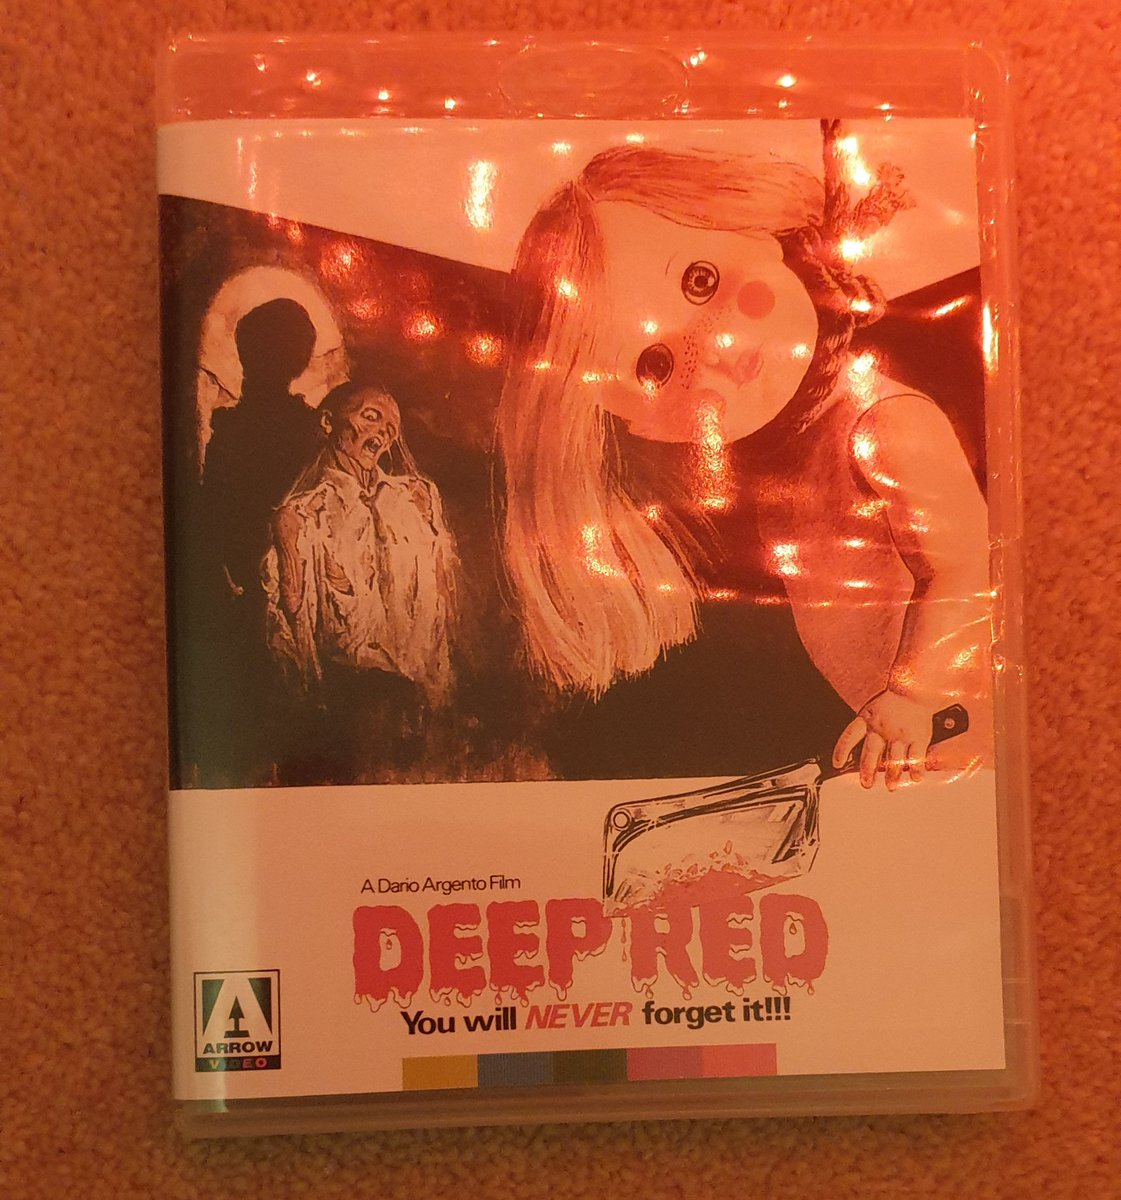 Dinner / Breakfast who knows when you do nights. So up in time to catch a flick too watch before I head out .  @EvolutionPod @ArgentoFans @claudsimonetti @colebrax @PopCultureGamer @Drawonelast #giallo @ScoredtoDeath #deepred